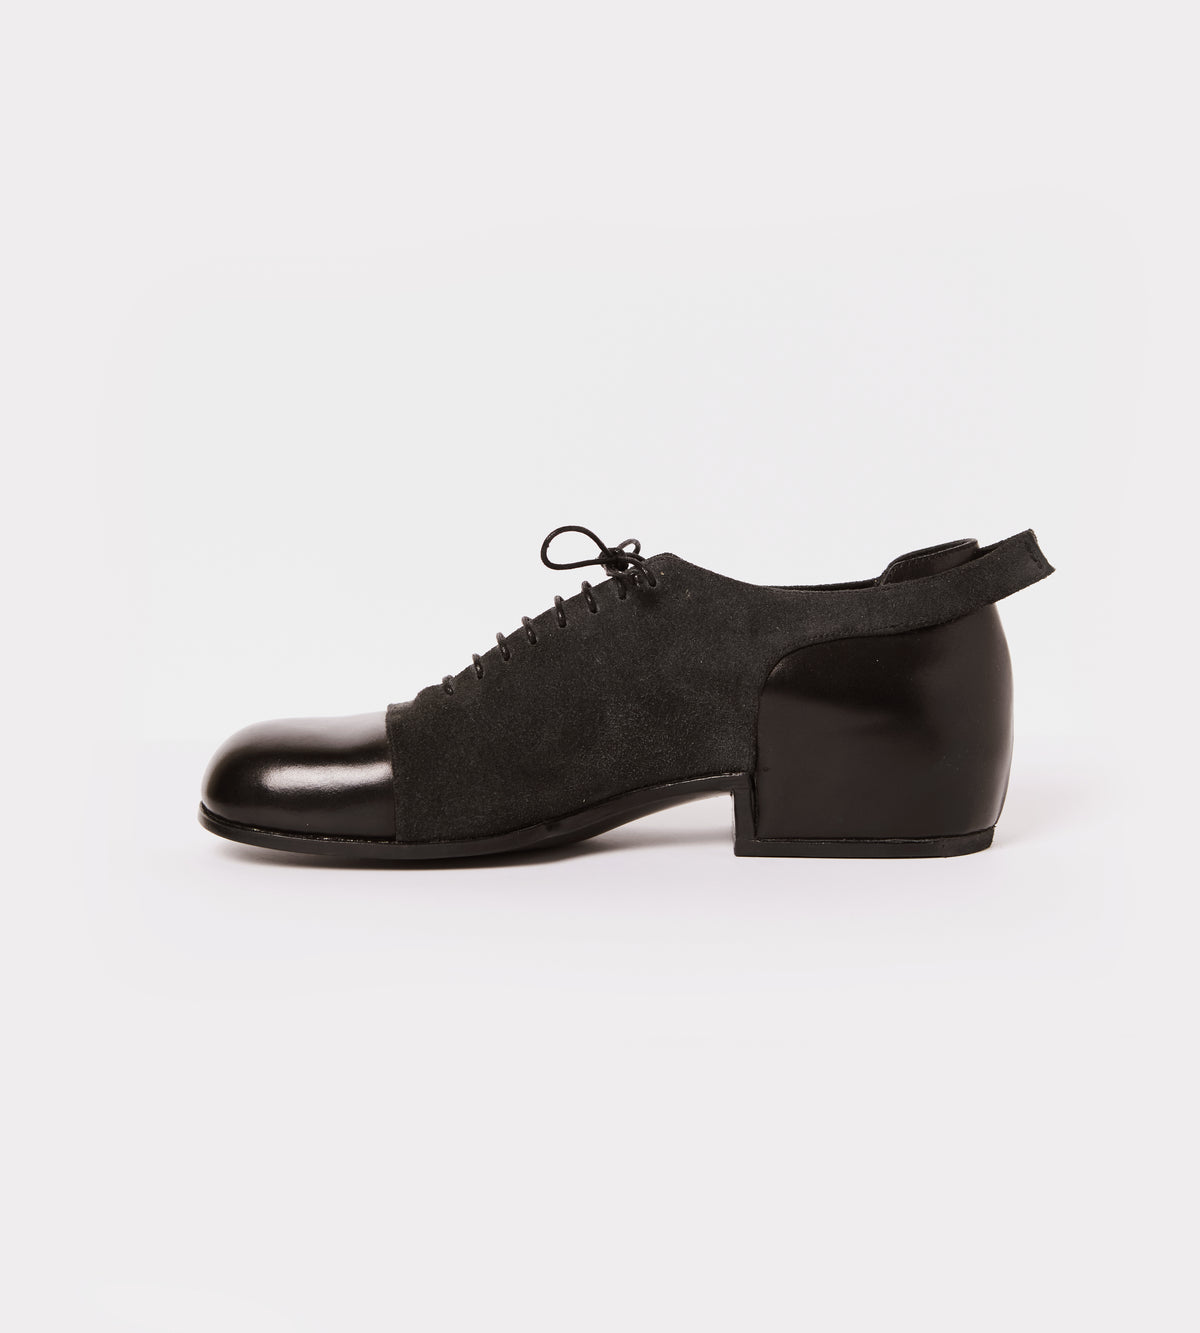 Black leather-suede lace up shoe inside view